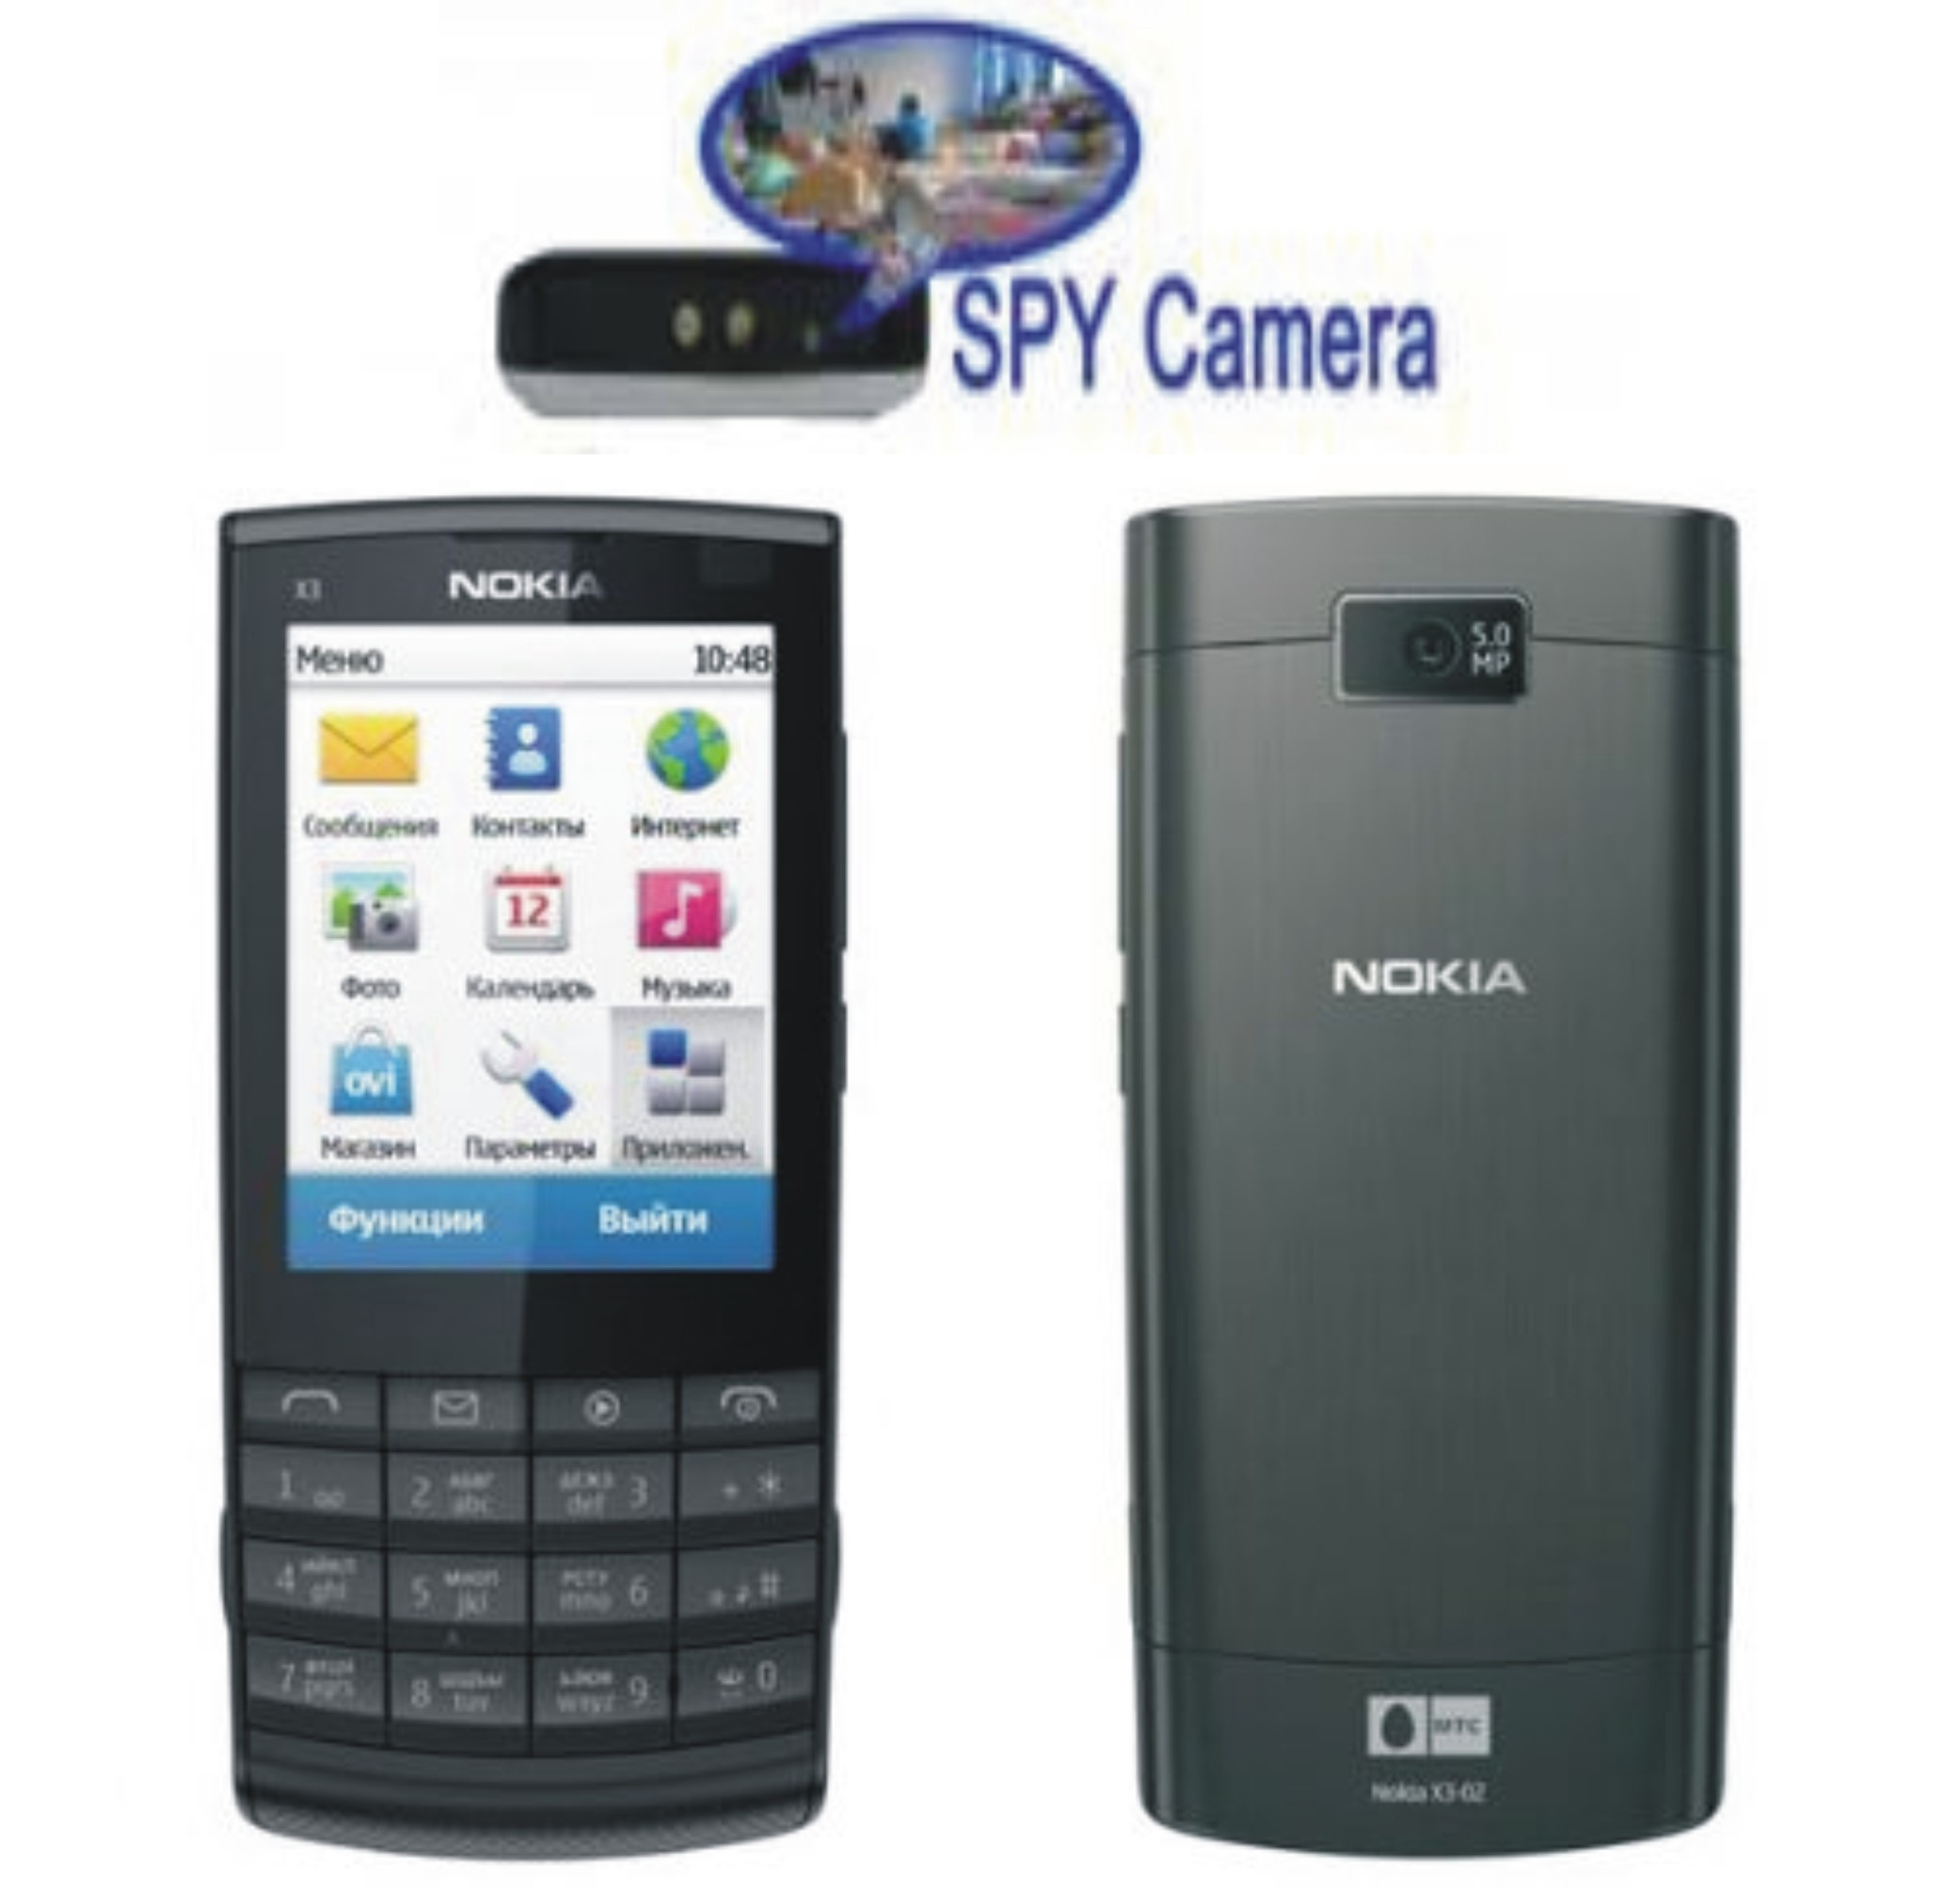 Spy Camera In Nokia Phone Touch Screen In Lucknow